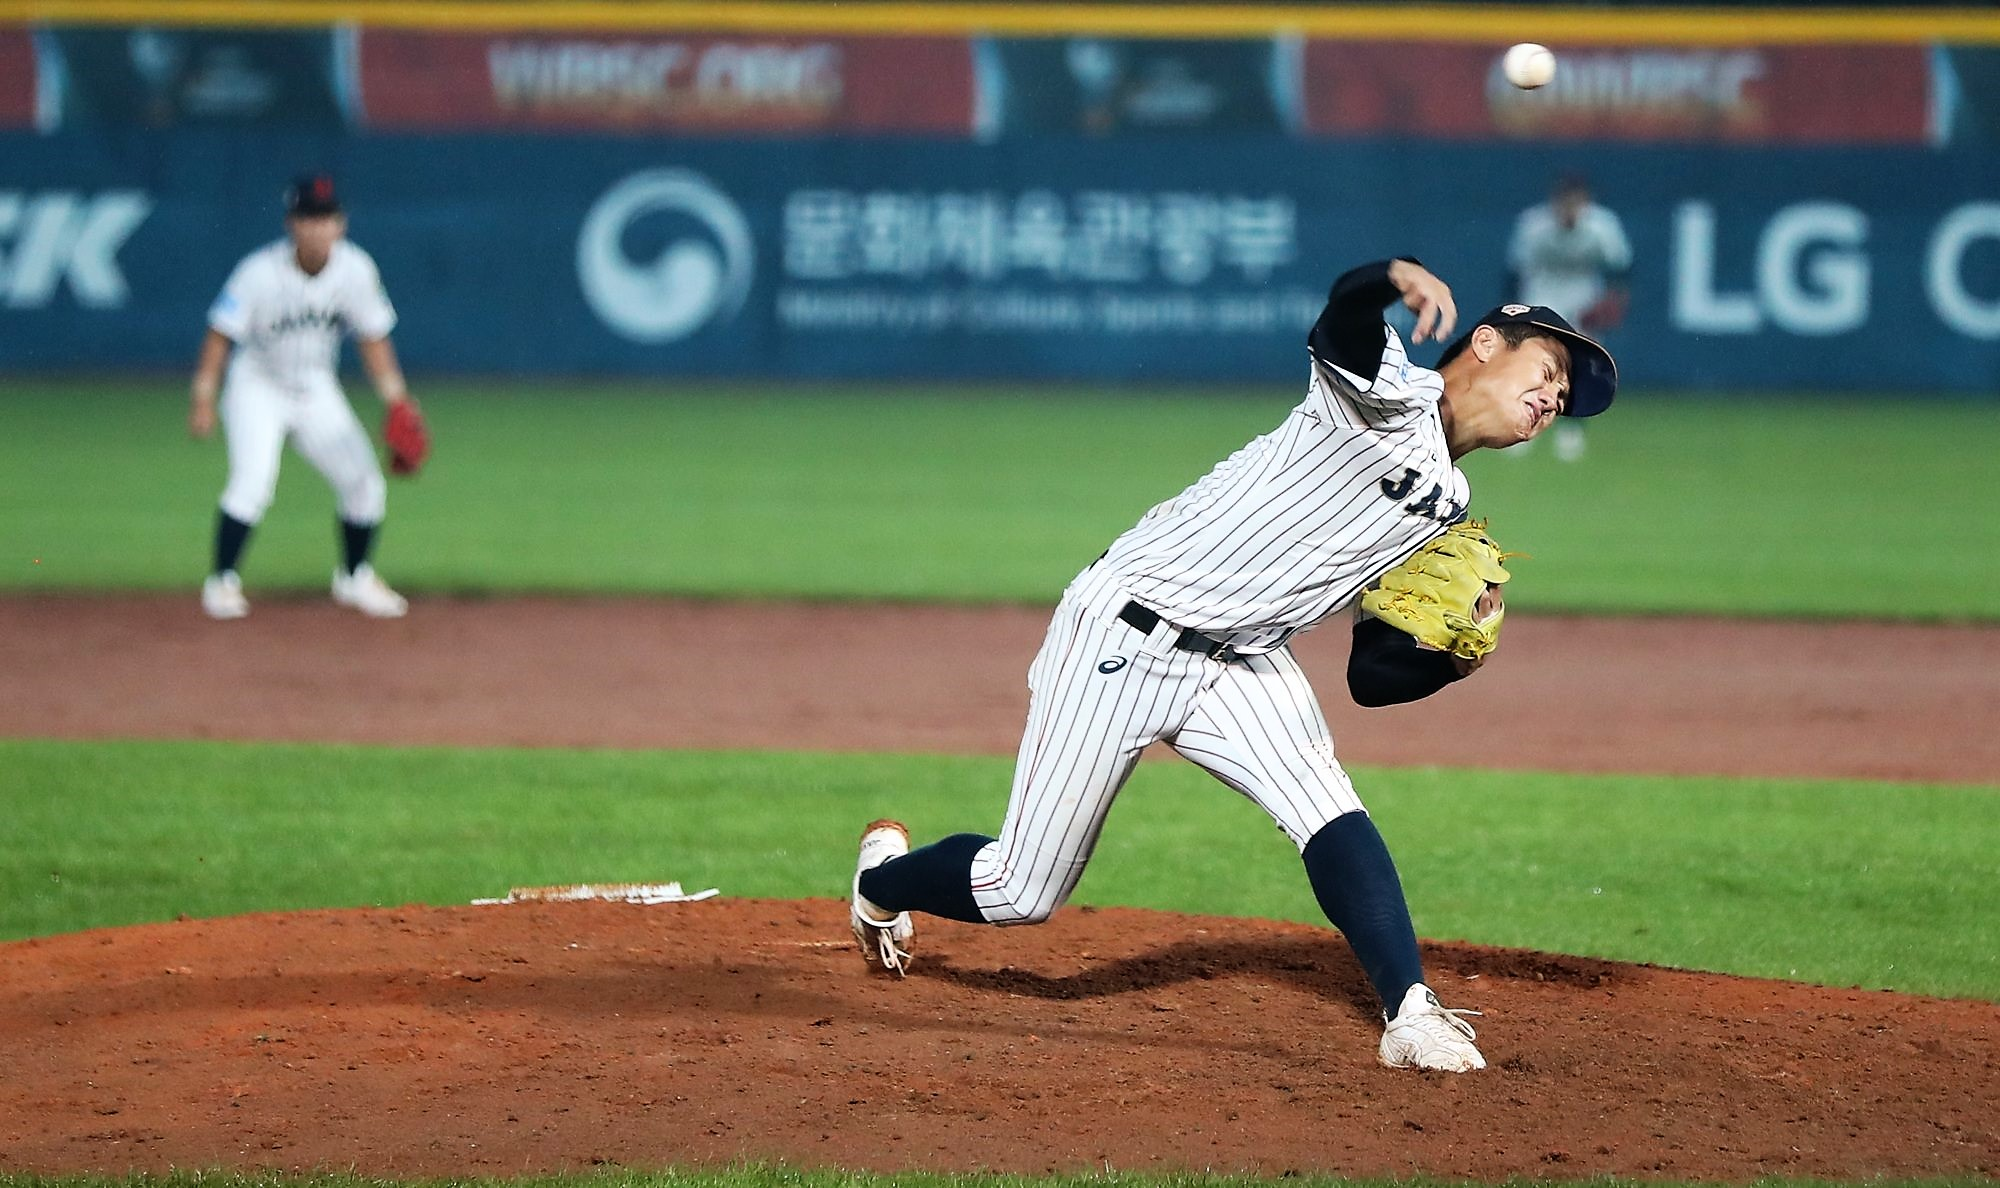 Japan's hard throwing righthander Junya Nishi